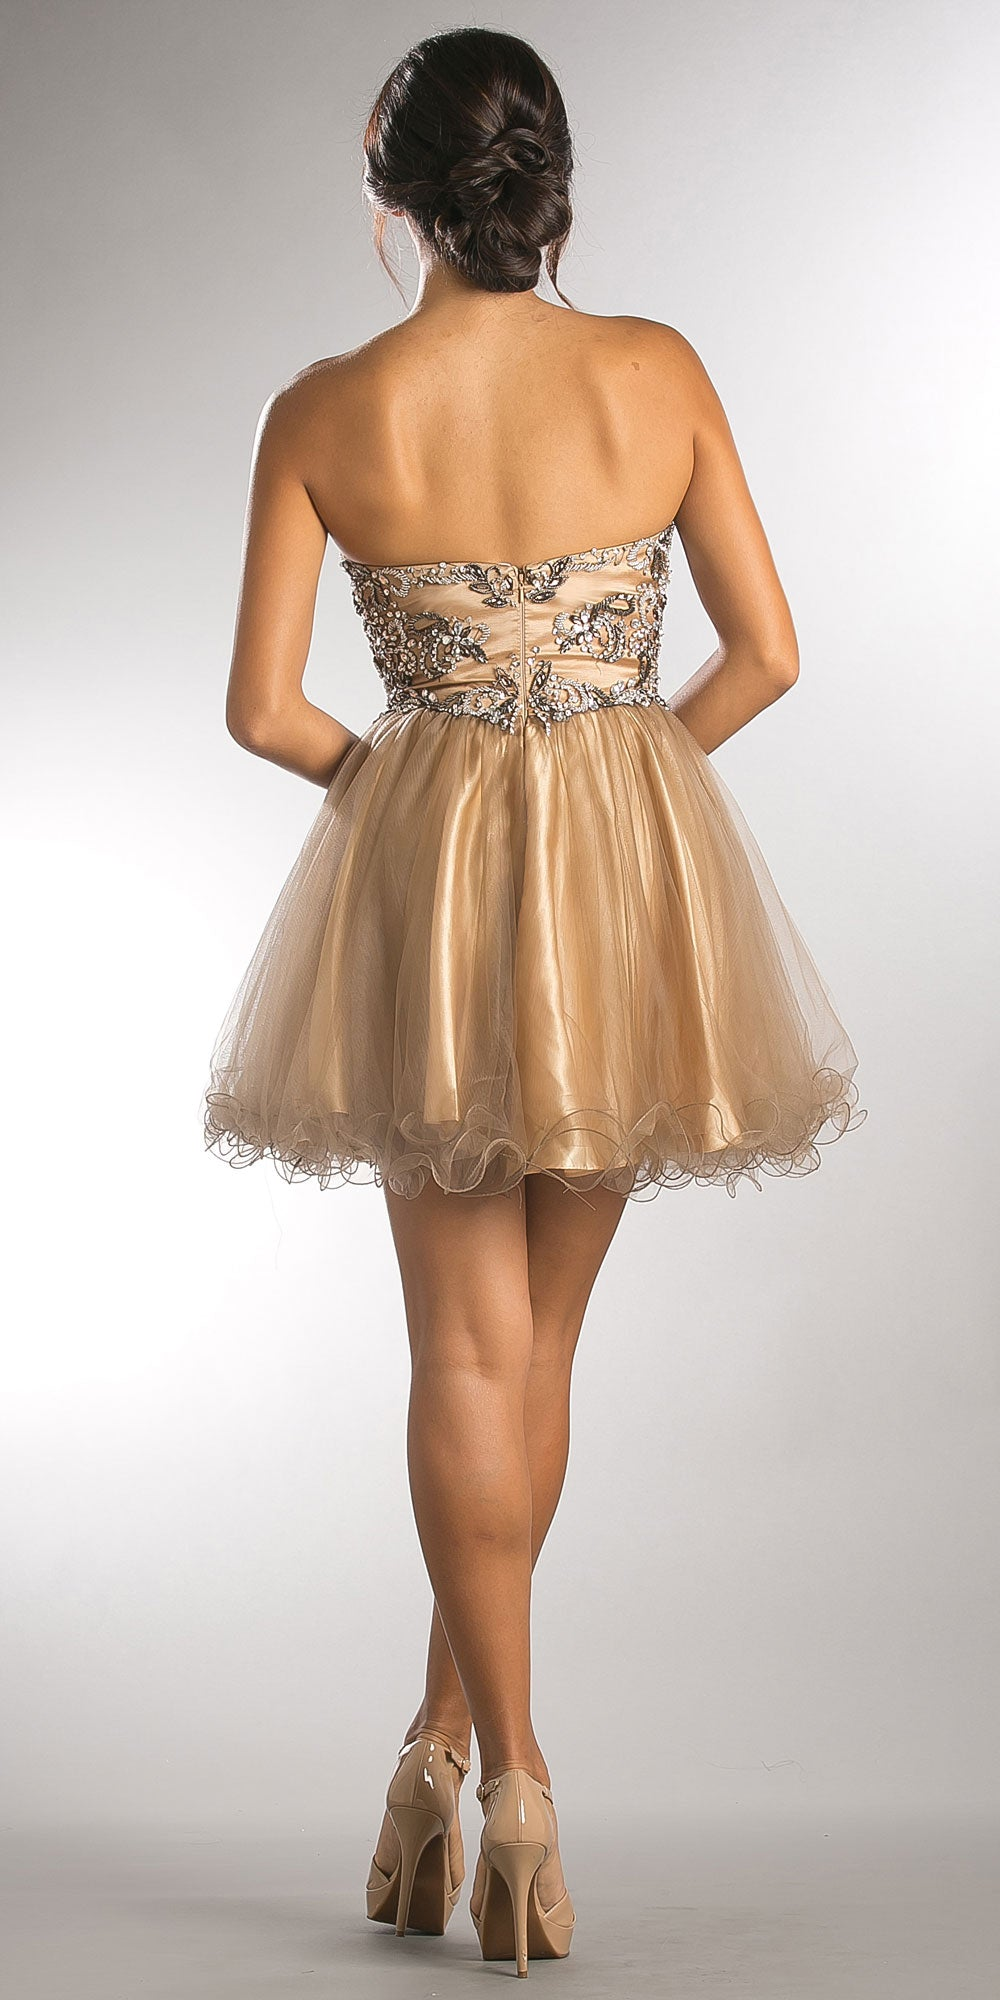 Back image of Strapless Satin Beaded Top Short Tulle Homecoming Dress